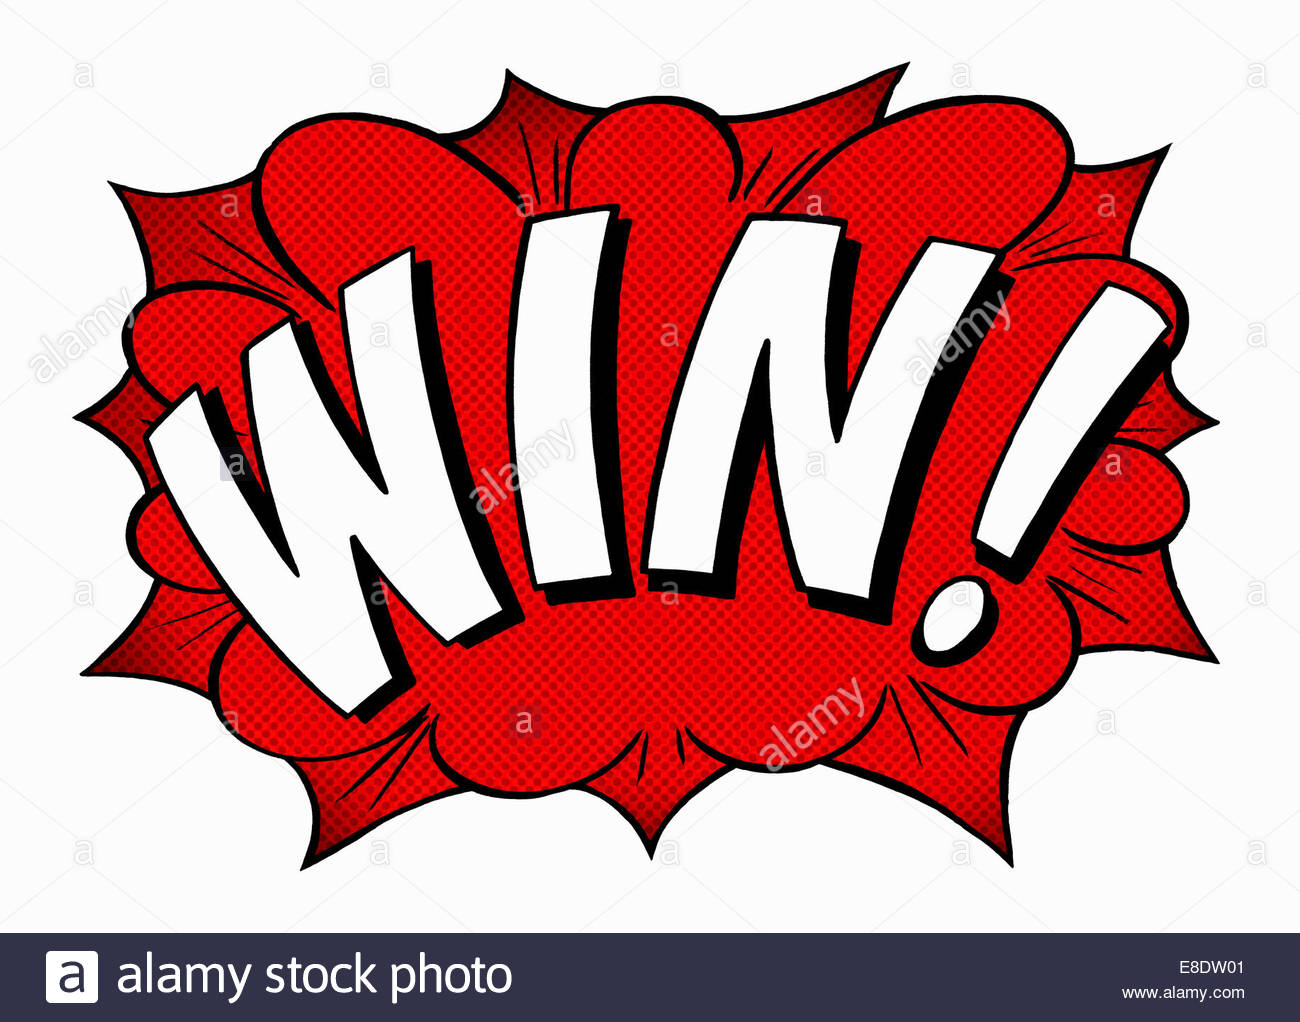 Win! comic book text - Stock Image